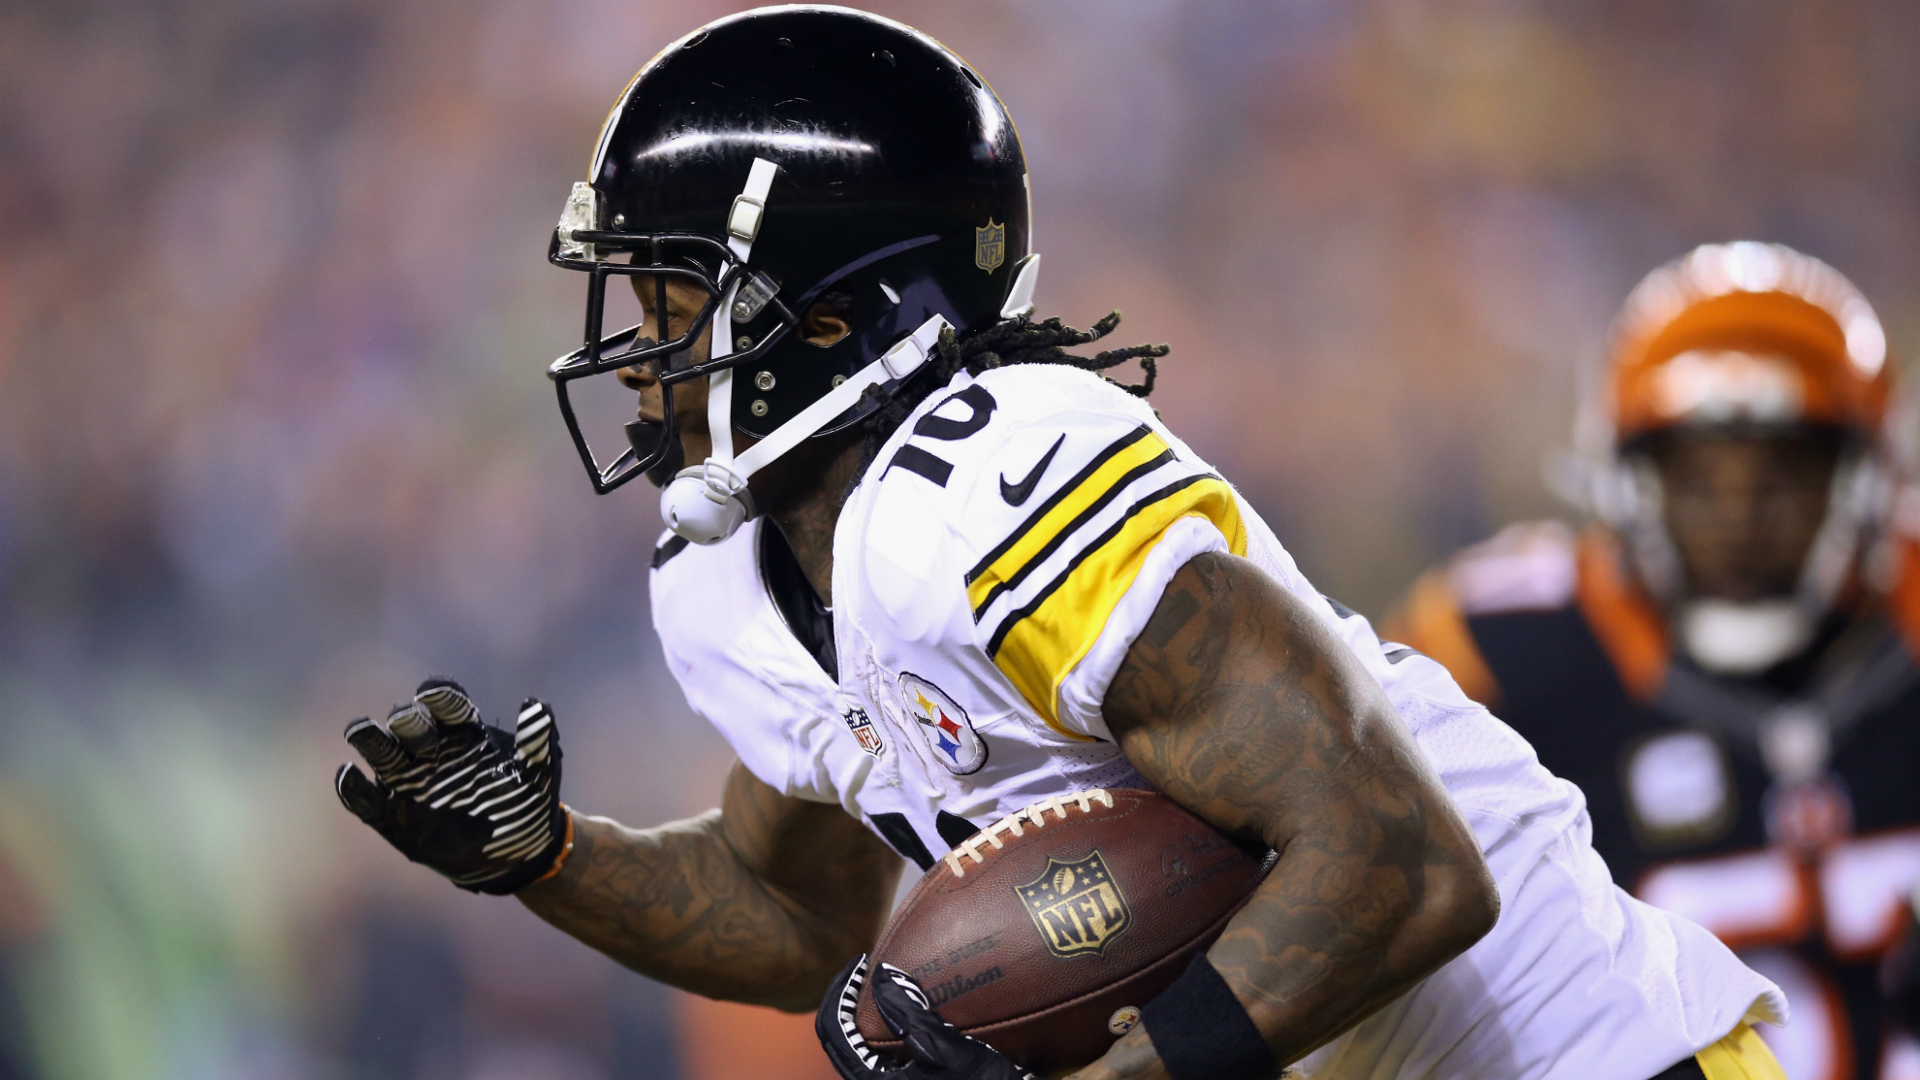 Colts' Matthias Farley denies trying to intentionally hurt Steelers' Martavis Bryant